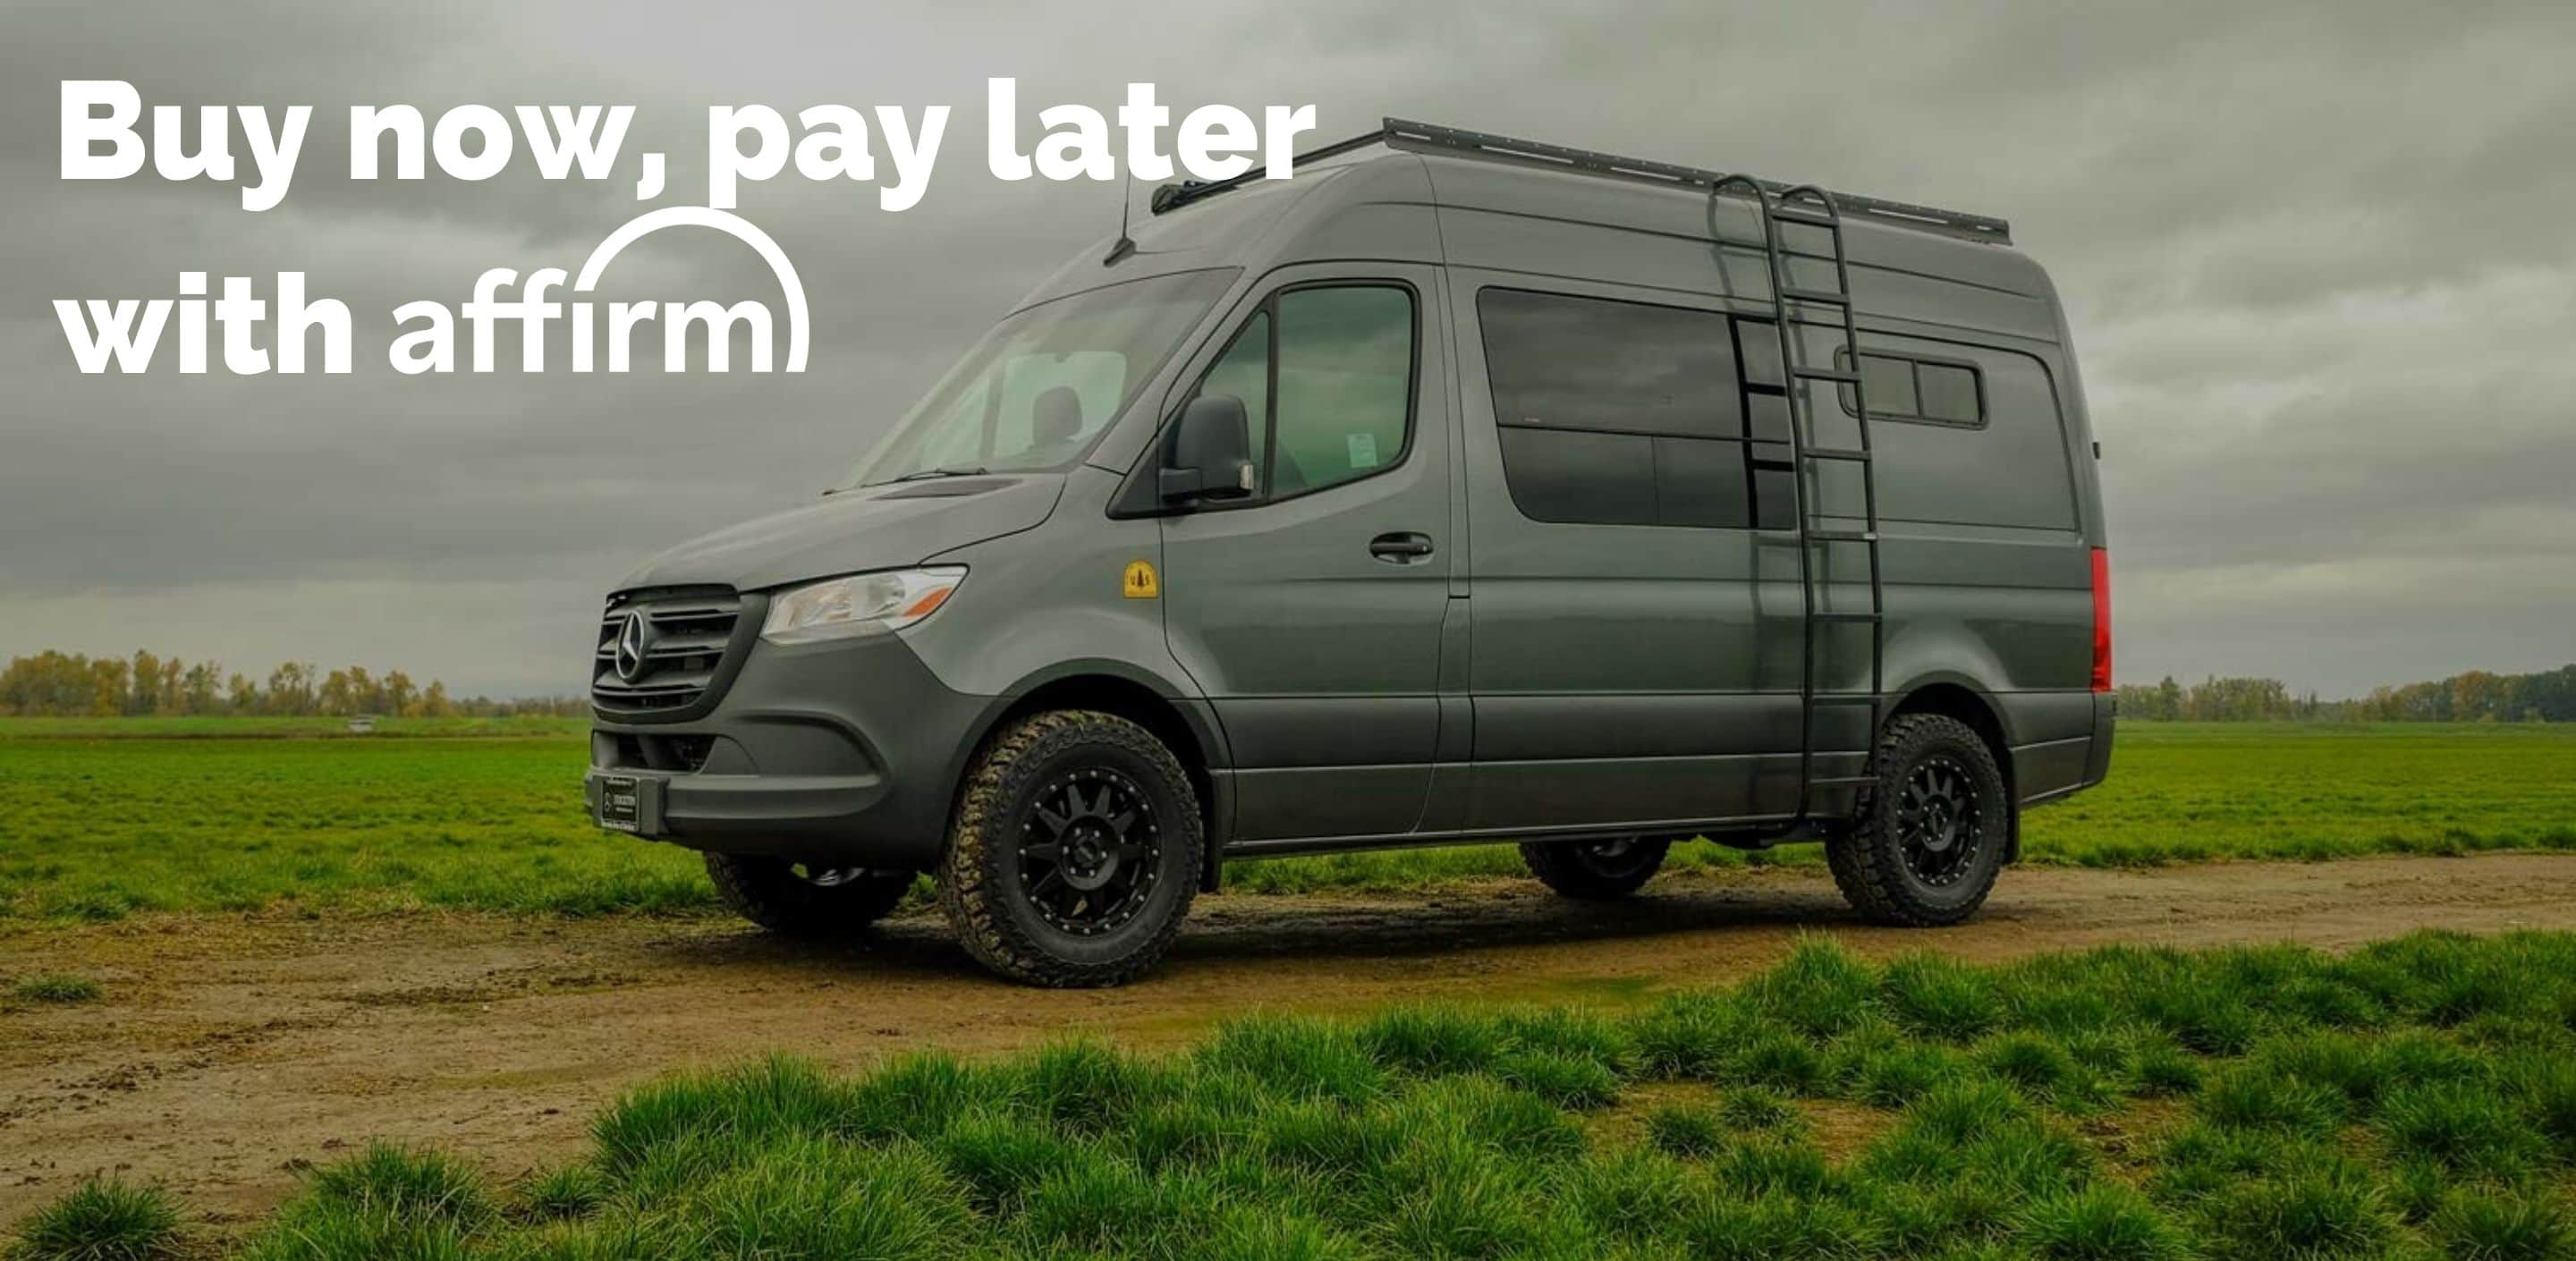 Affirm Financing on Flatline Van Co.